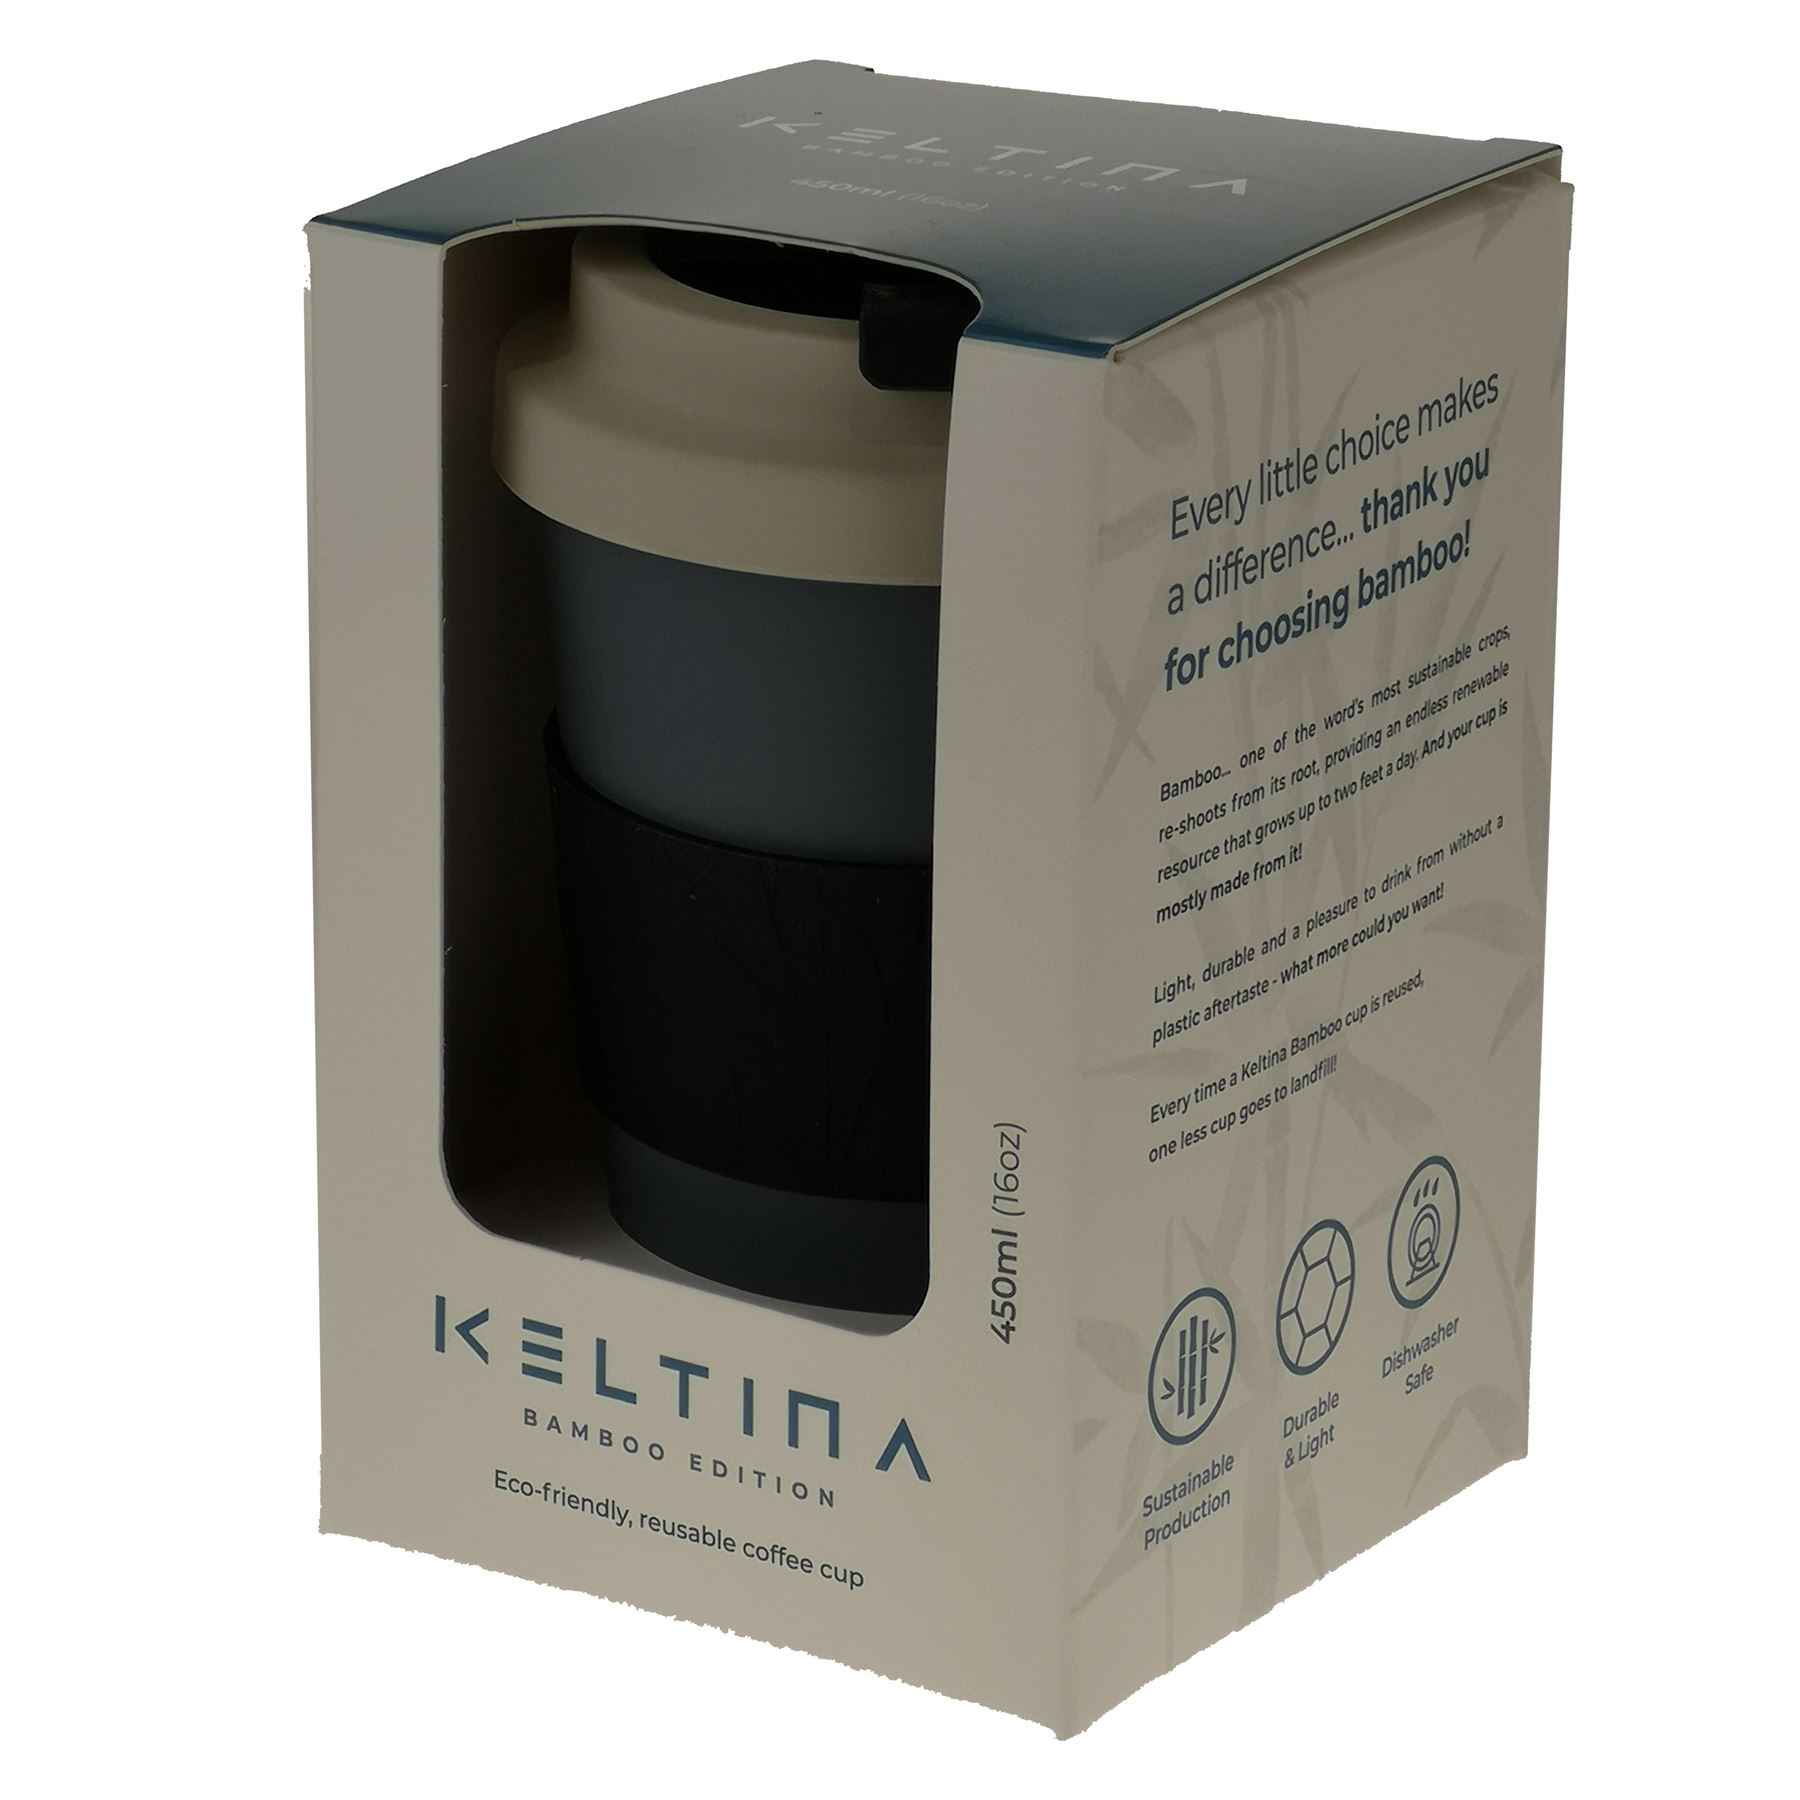 Keltina-Bamboo-Eco-Biodegradable-Coffee-Travel-Mug-To-Keep-Cup-Reusable thumbnail 7